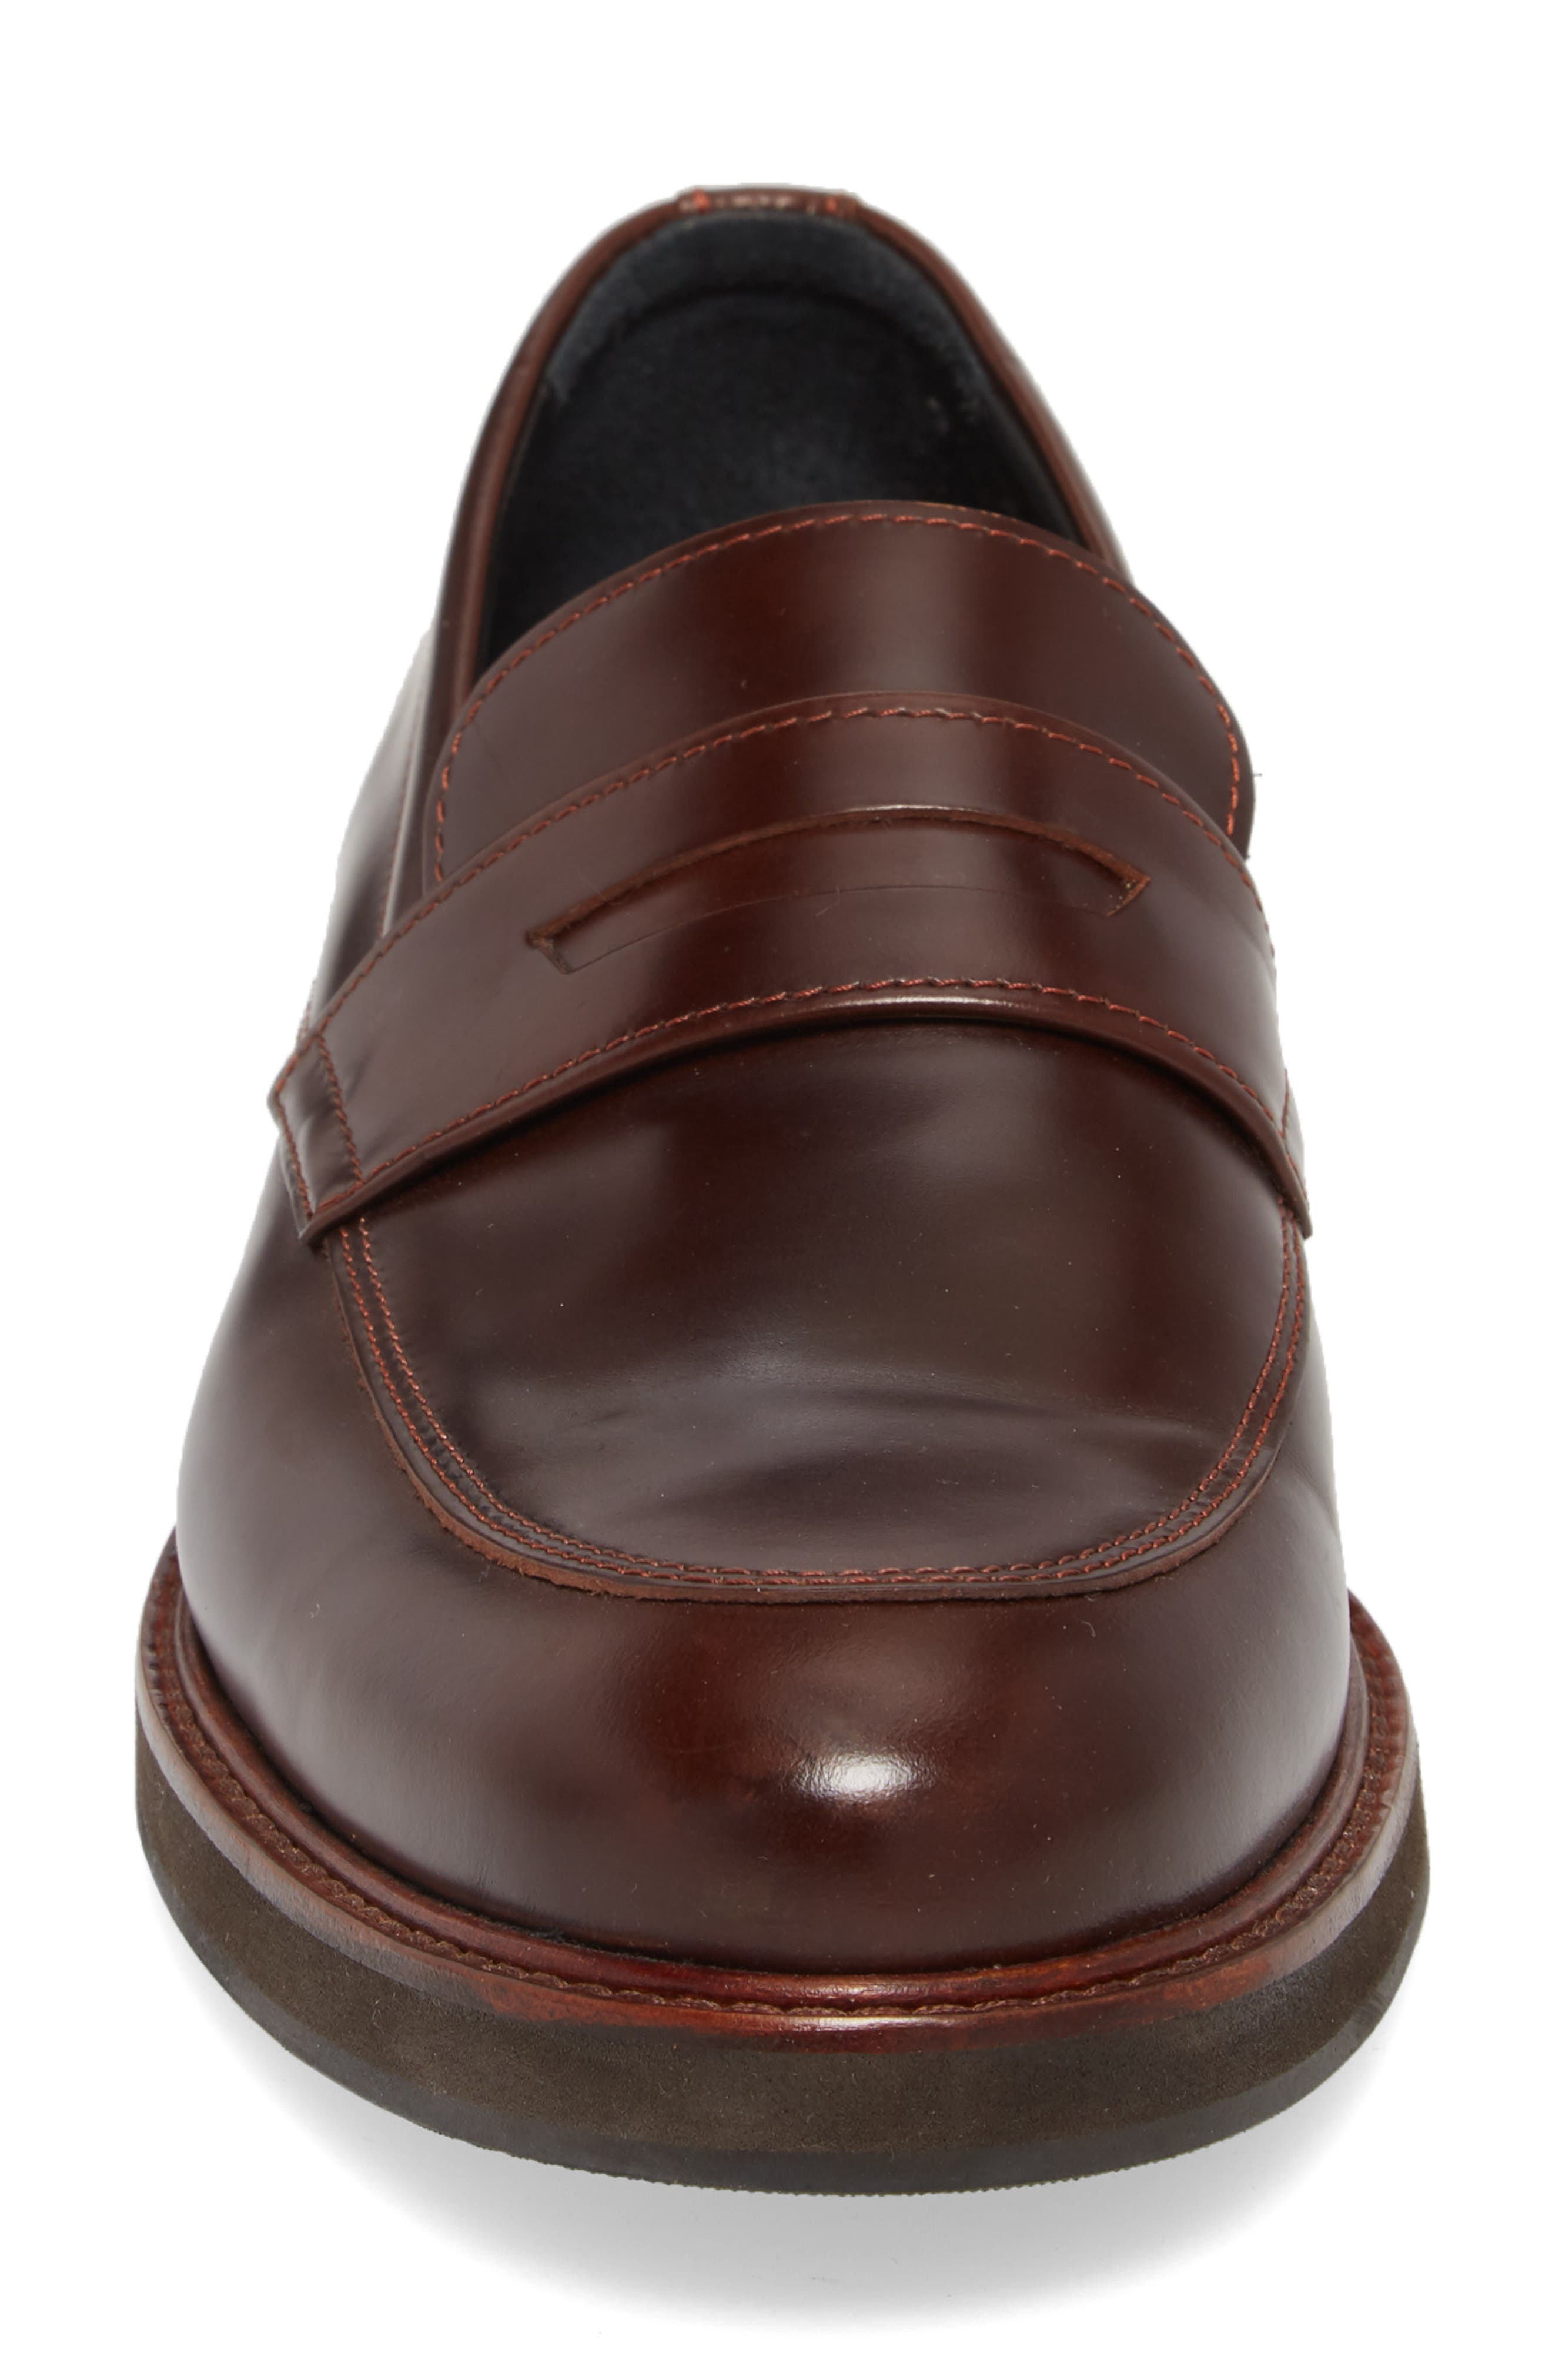 'Marcos' Loafer,                             Alternate thumbnail 4, color,                             Multi Brown/ Brown